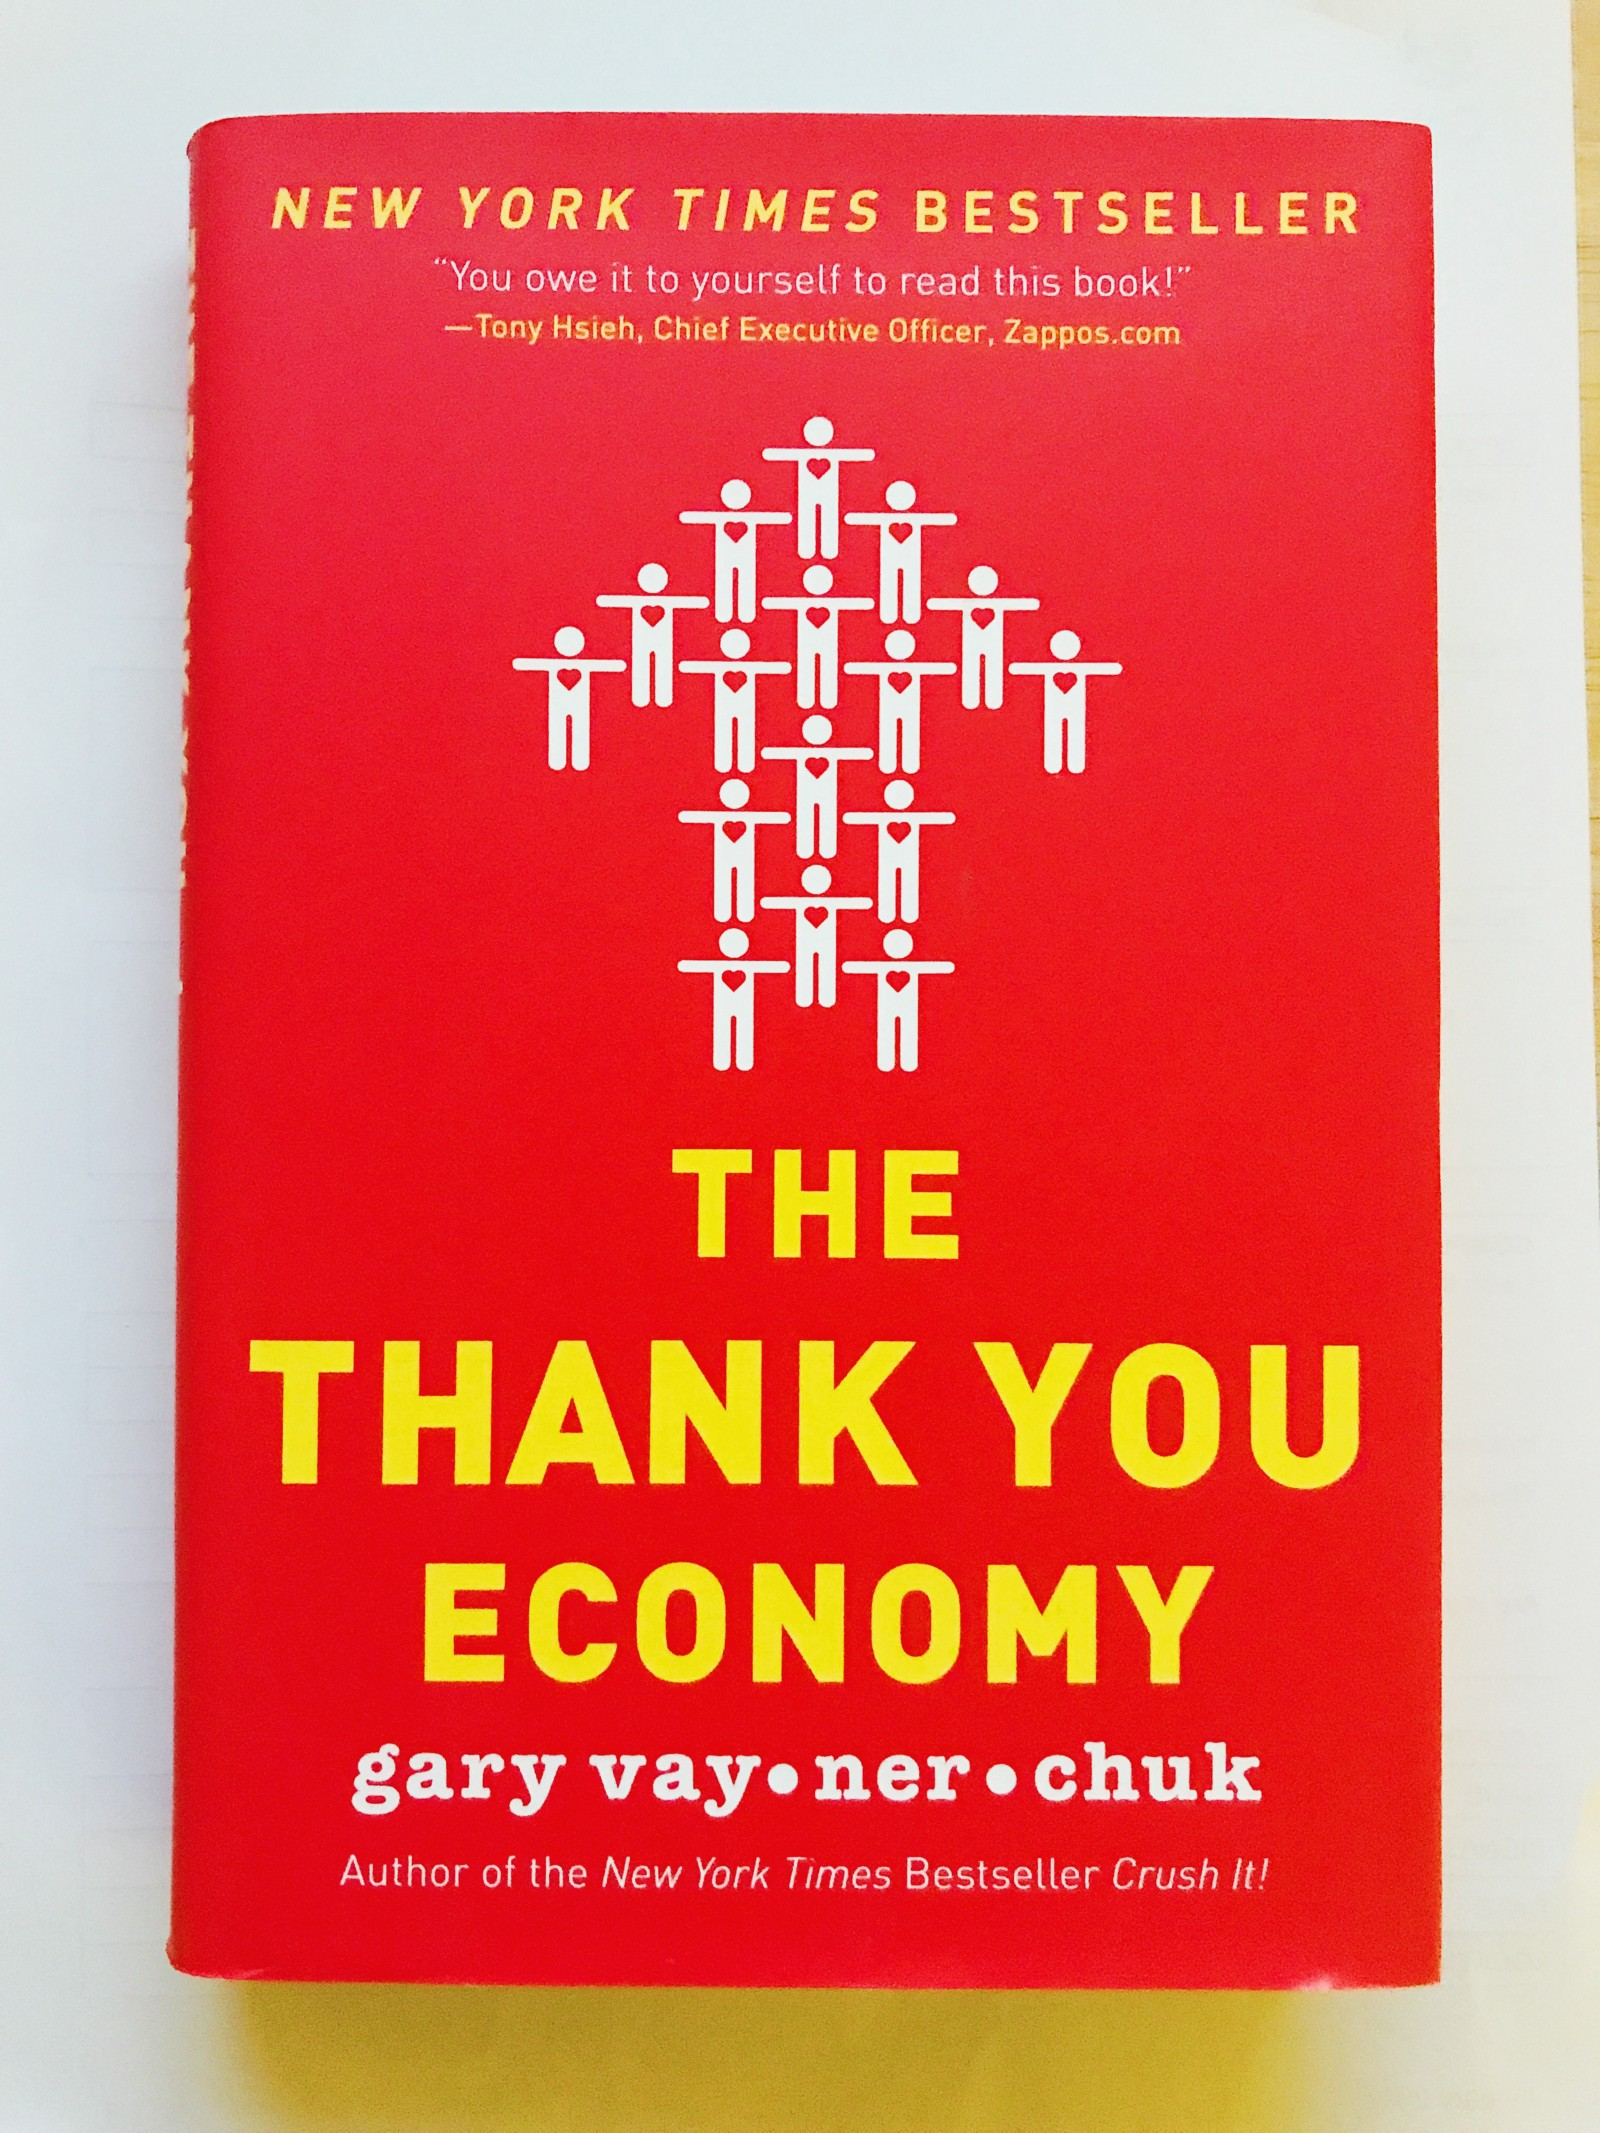 One minute book review the thank you economy by gary vaynerchuck solutioingenieria Gallery